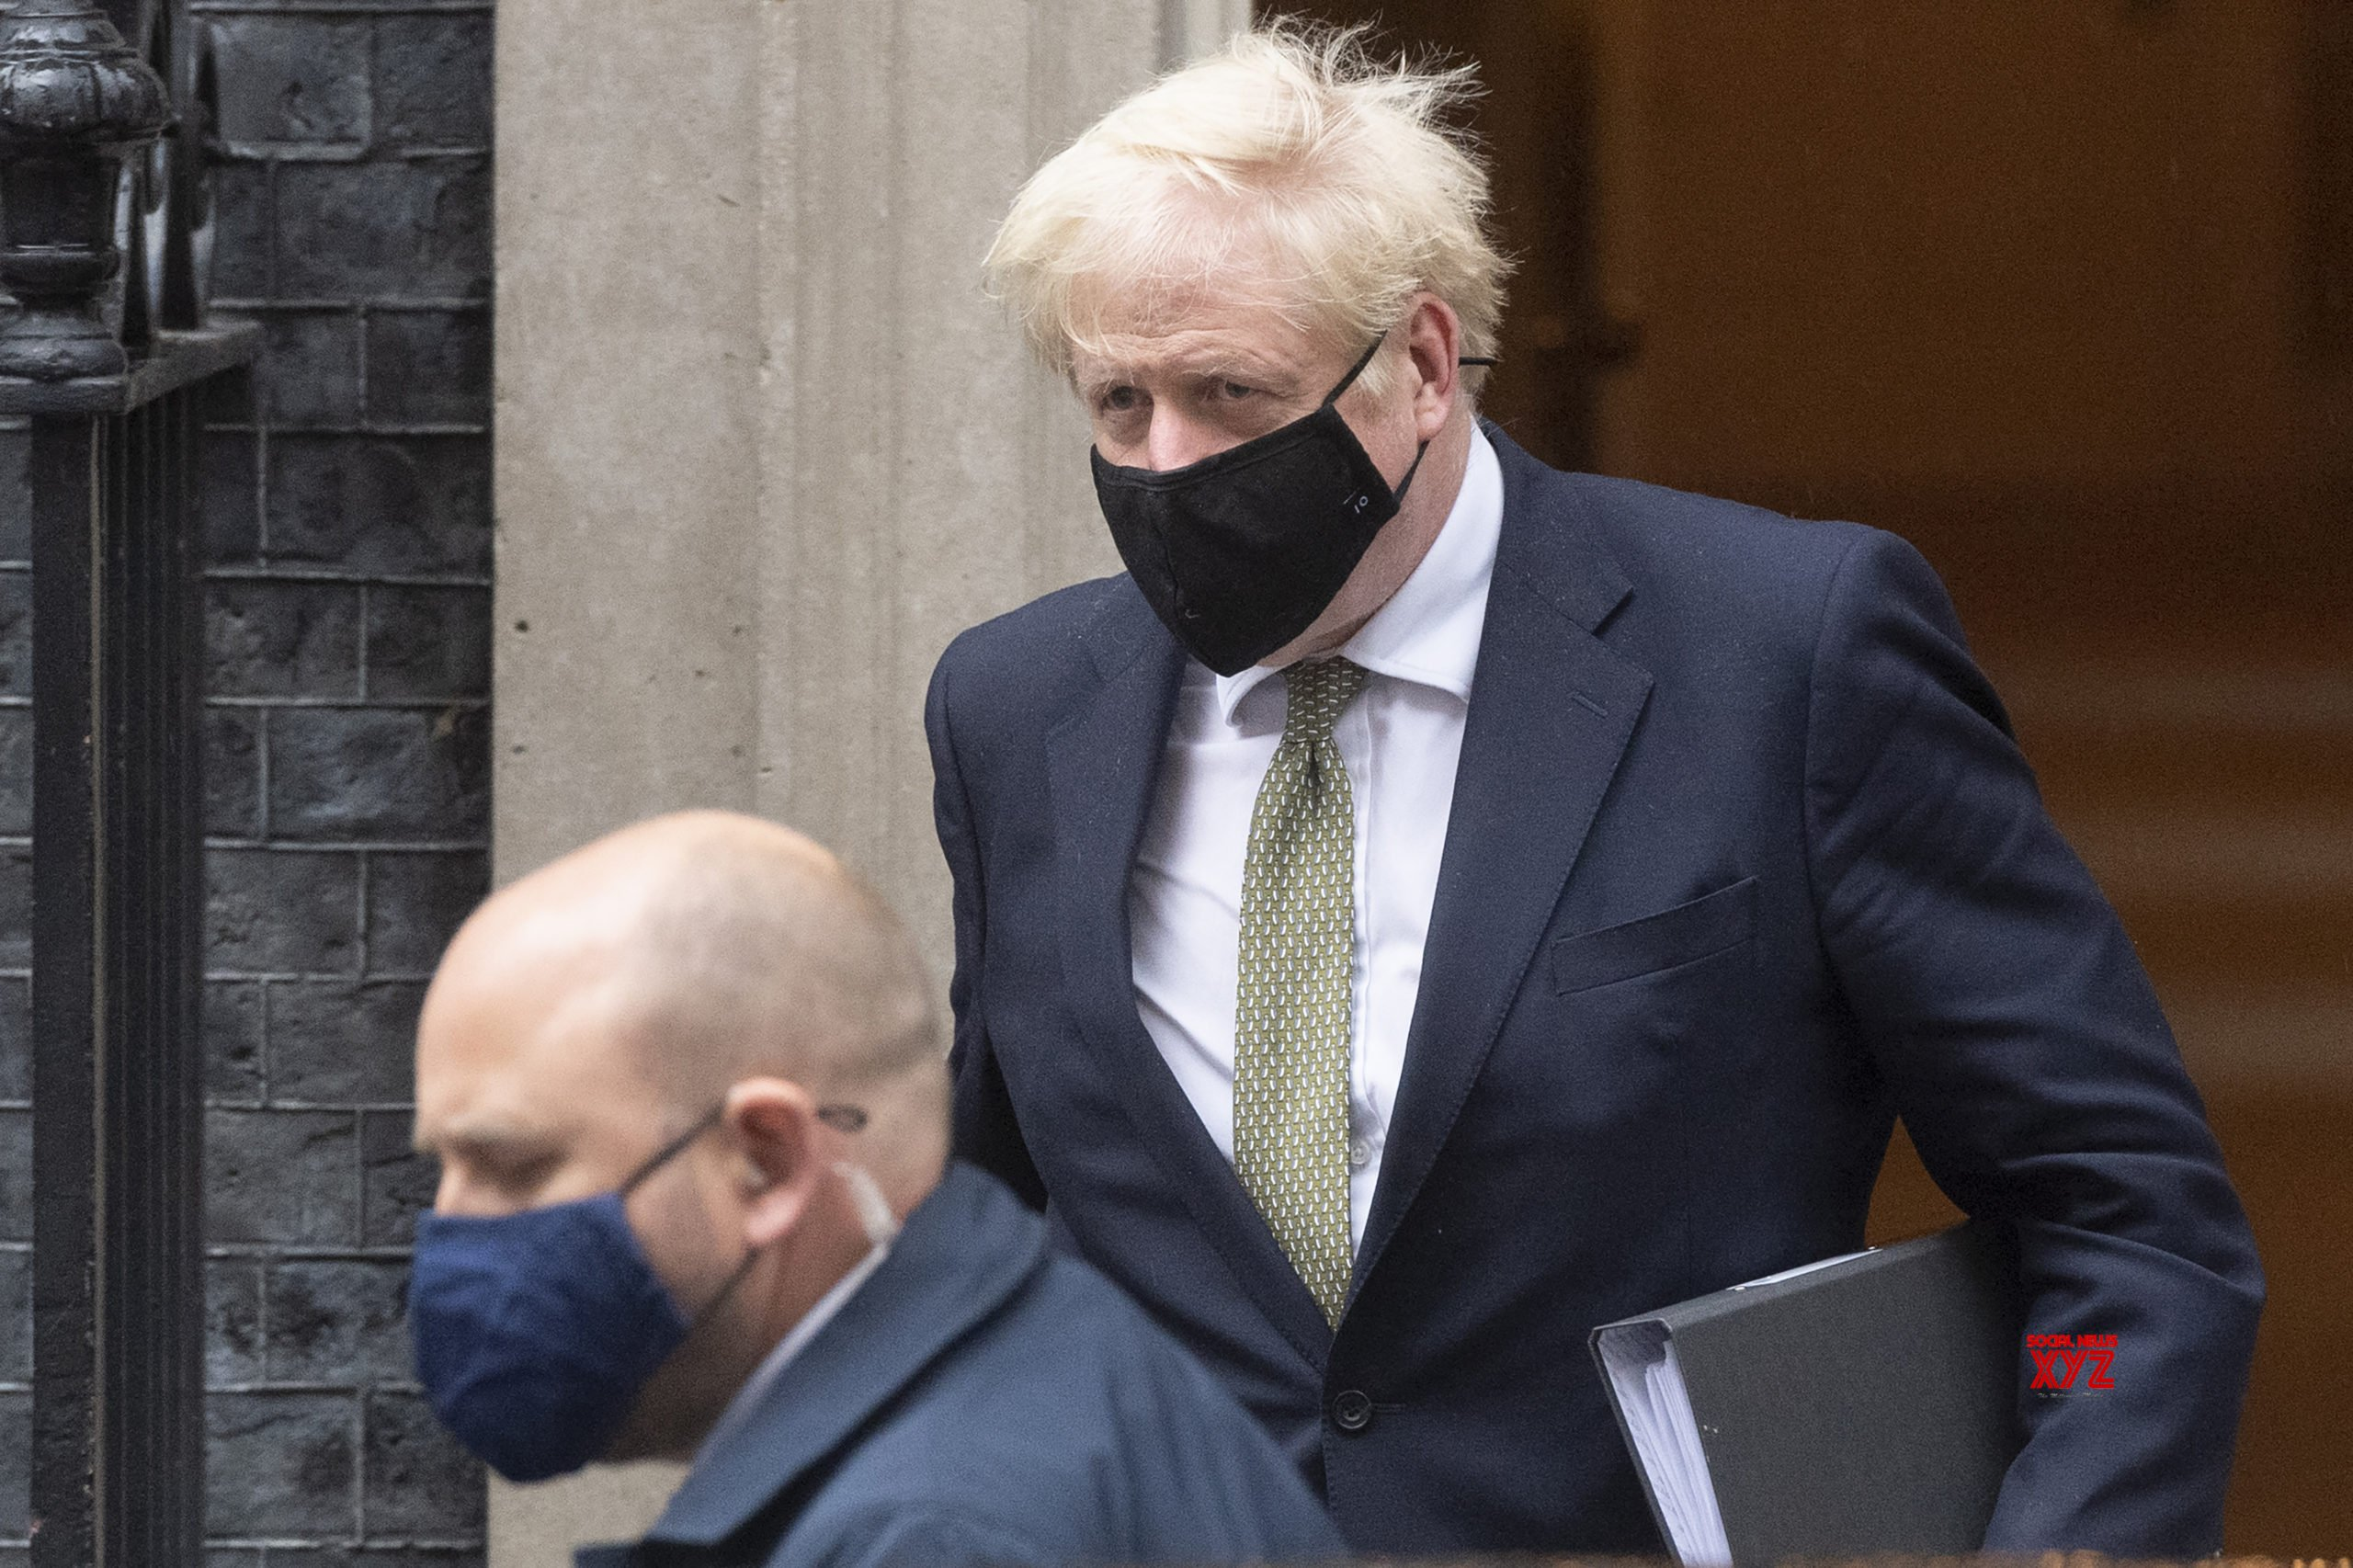 Johnson defends Covid-19 curbs as 'right, responsible thing'